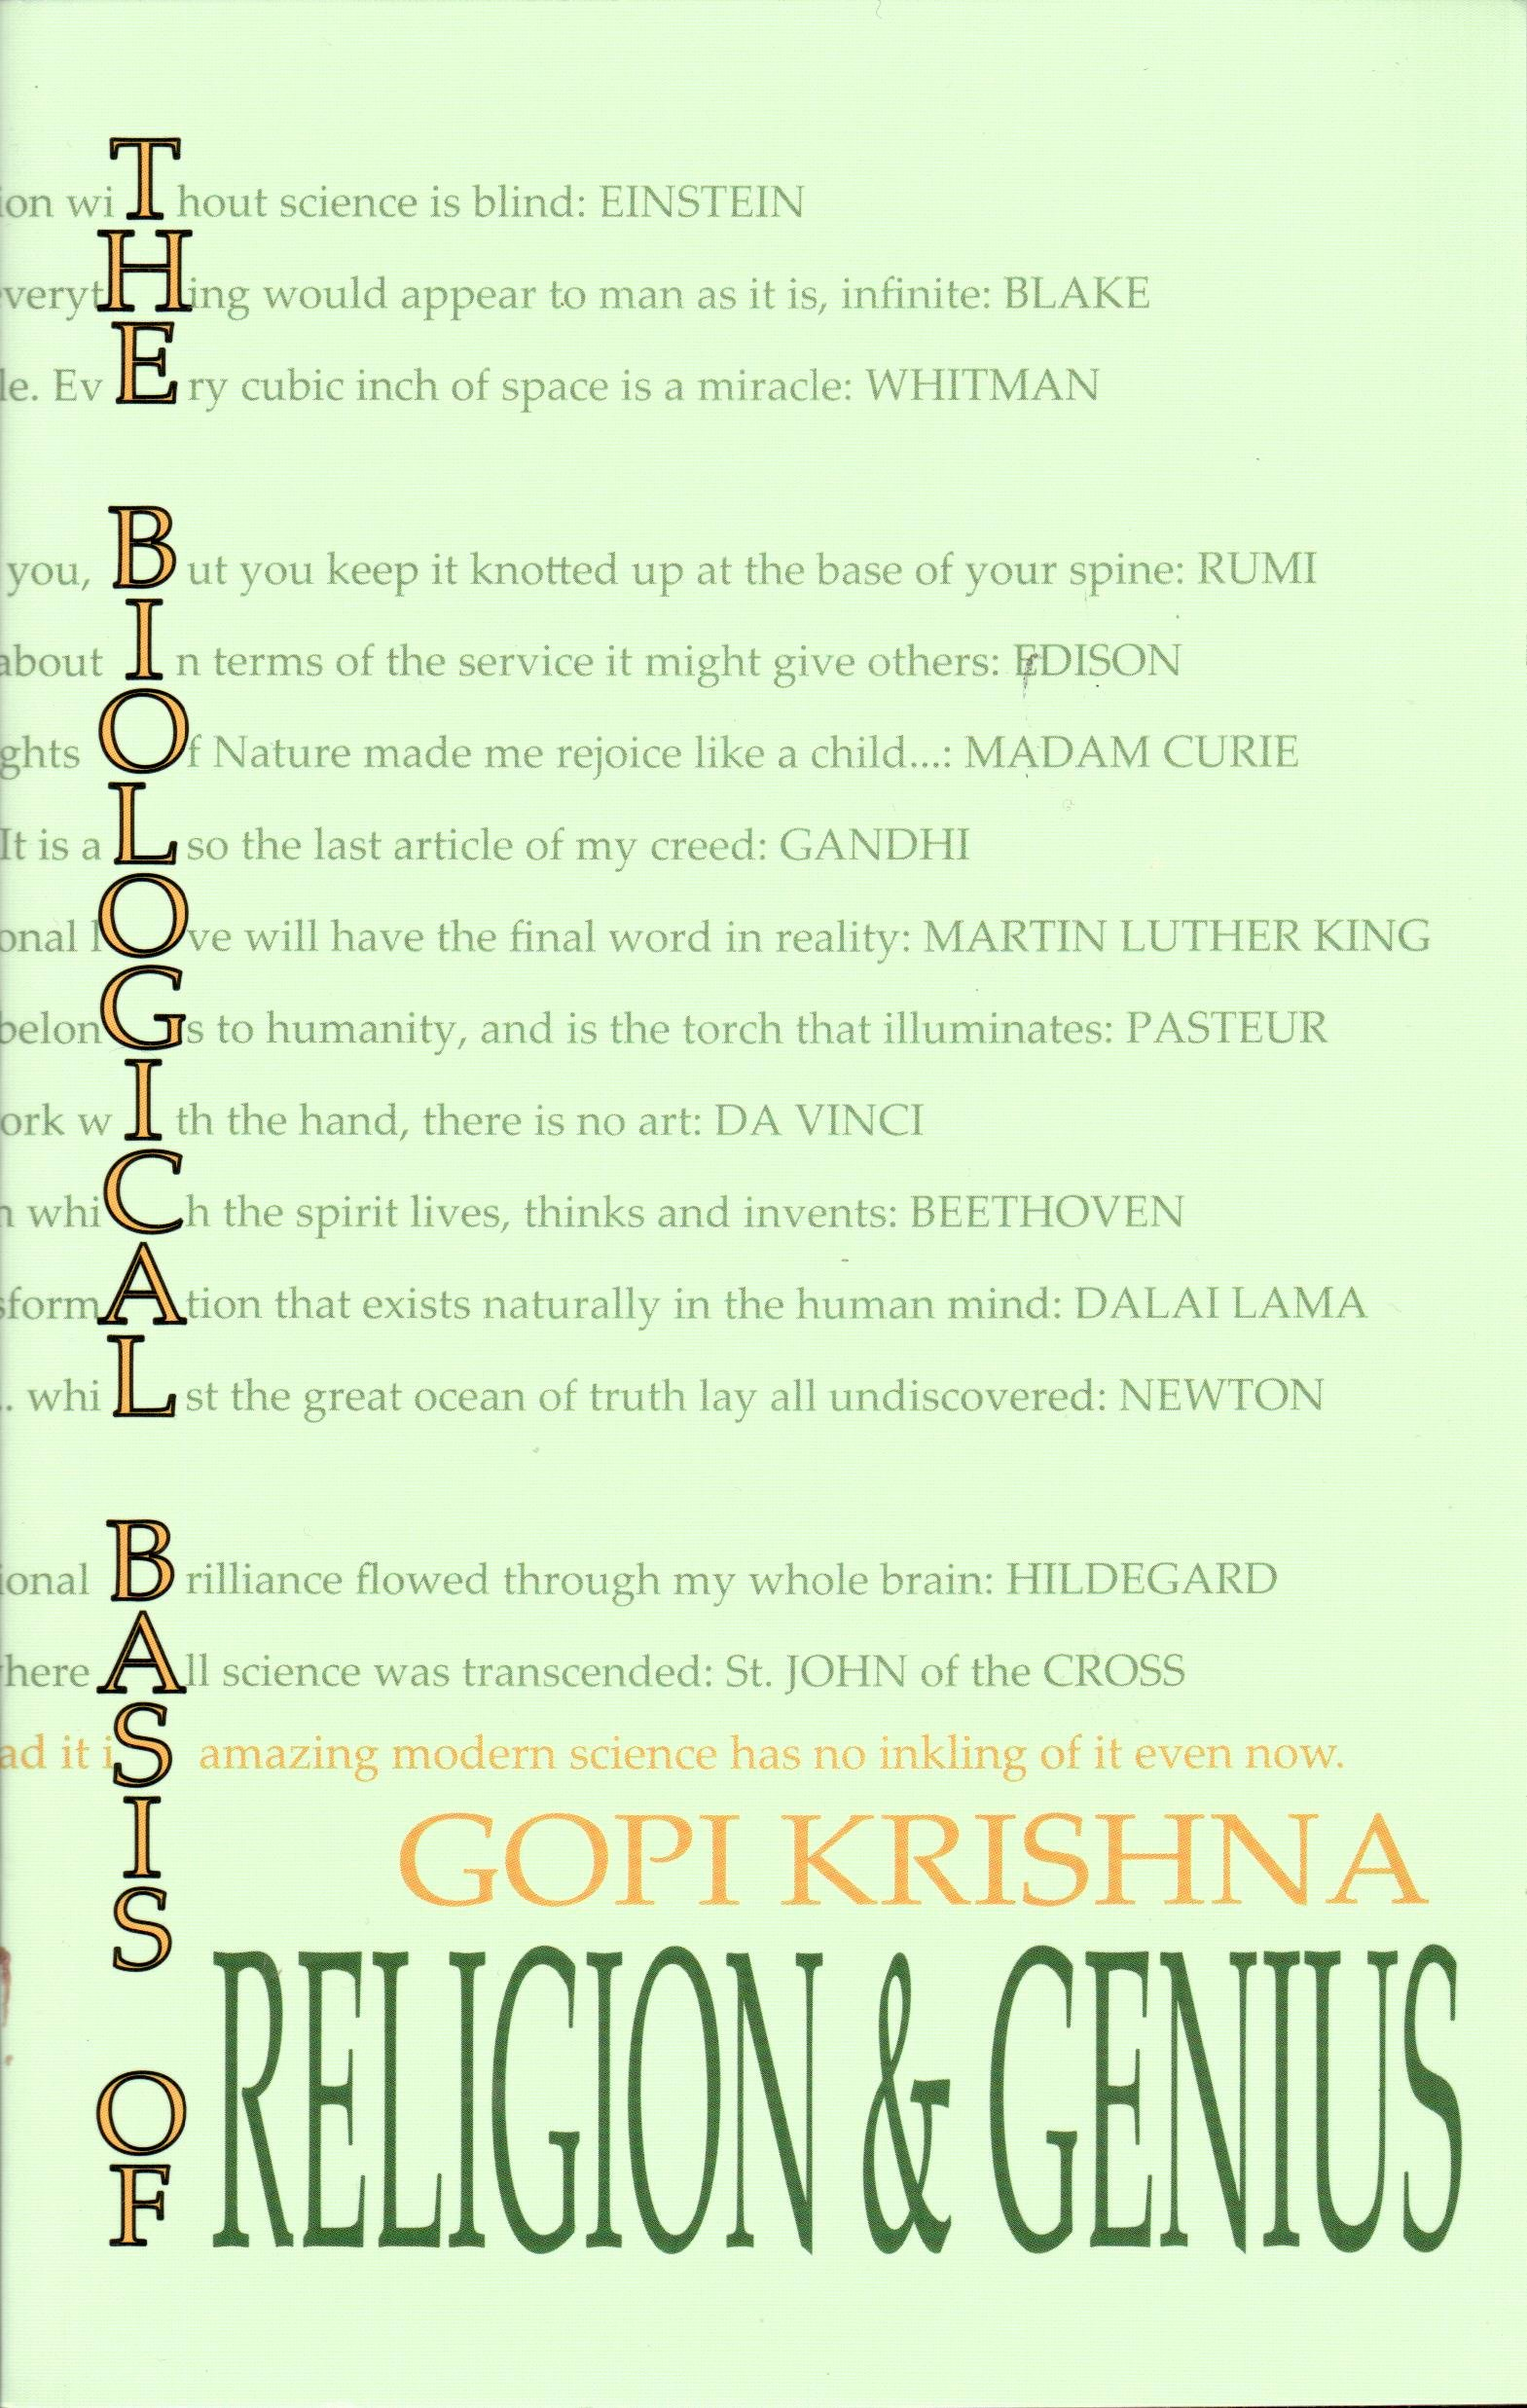 the biological basis of religion and genius gopi krishna  follow the author